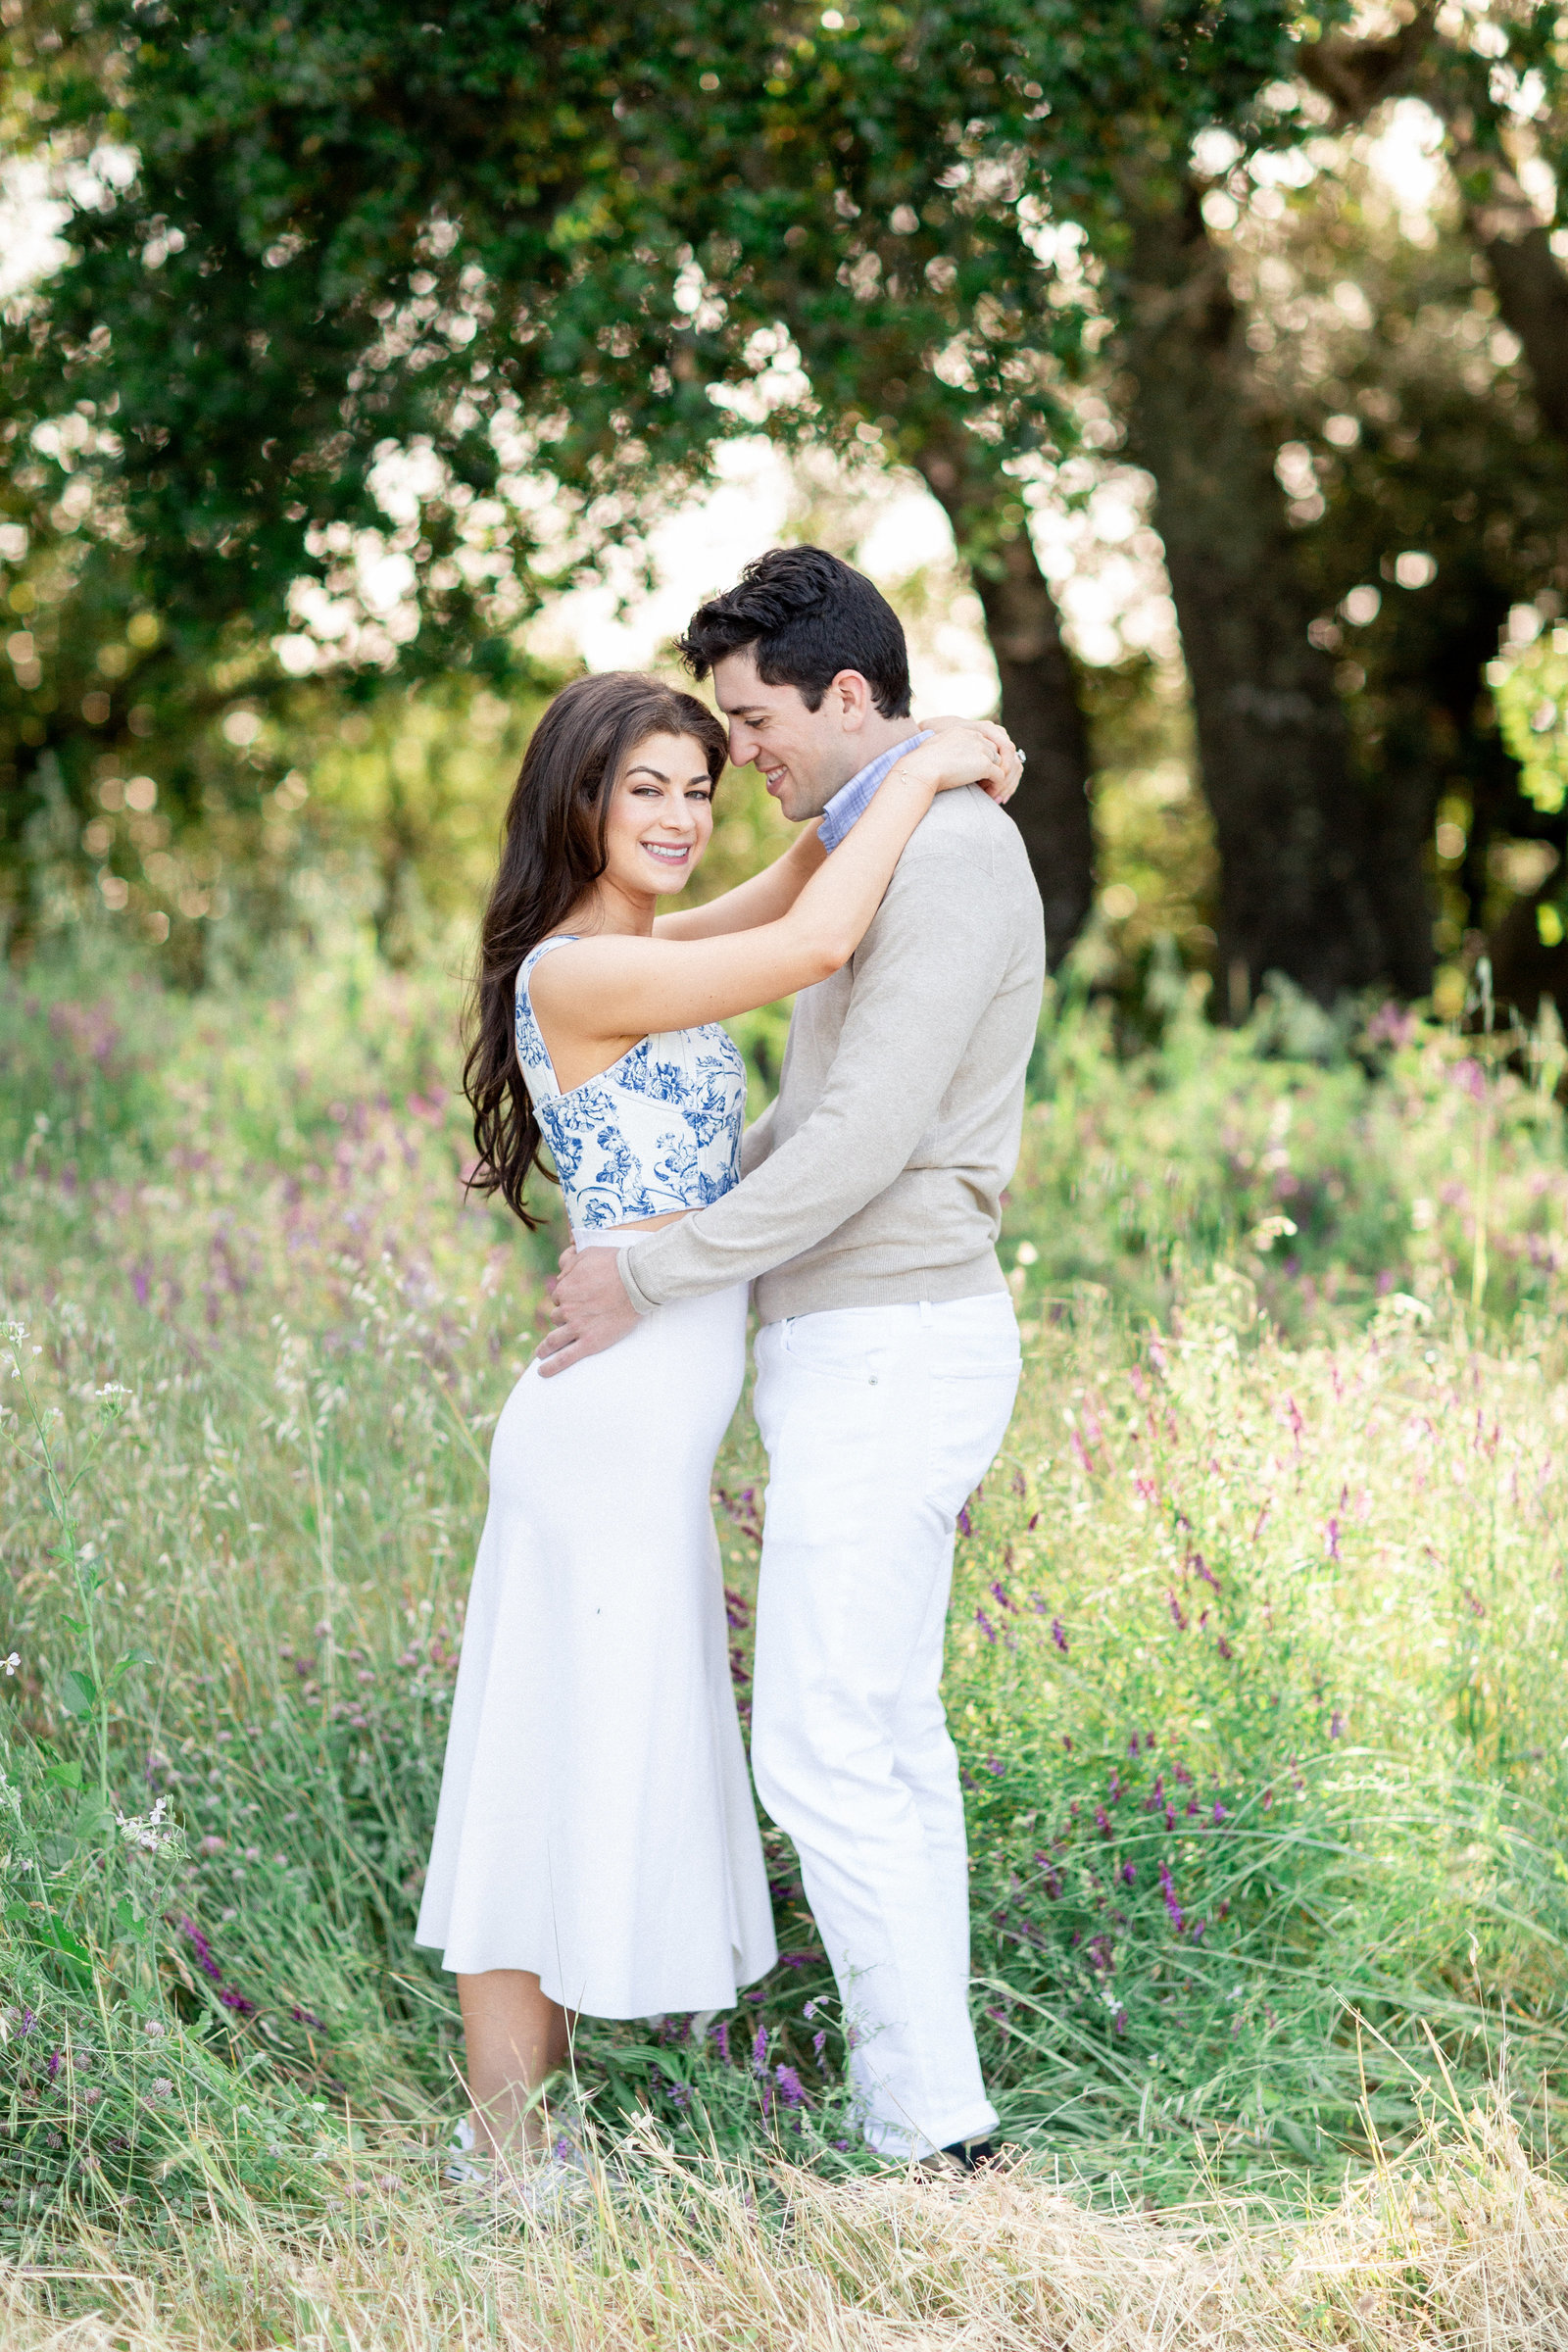 034-larissa-cleveland-engaged-wedding_photographer-san-francisco-carmel-napa-california-lcphoto-AJ-engaged-007